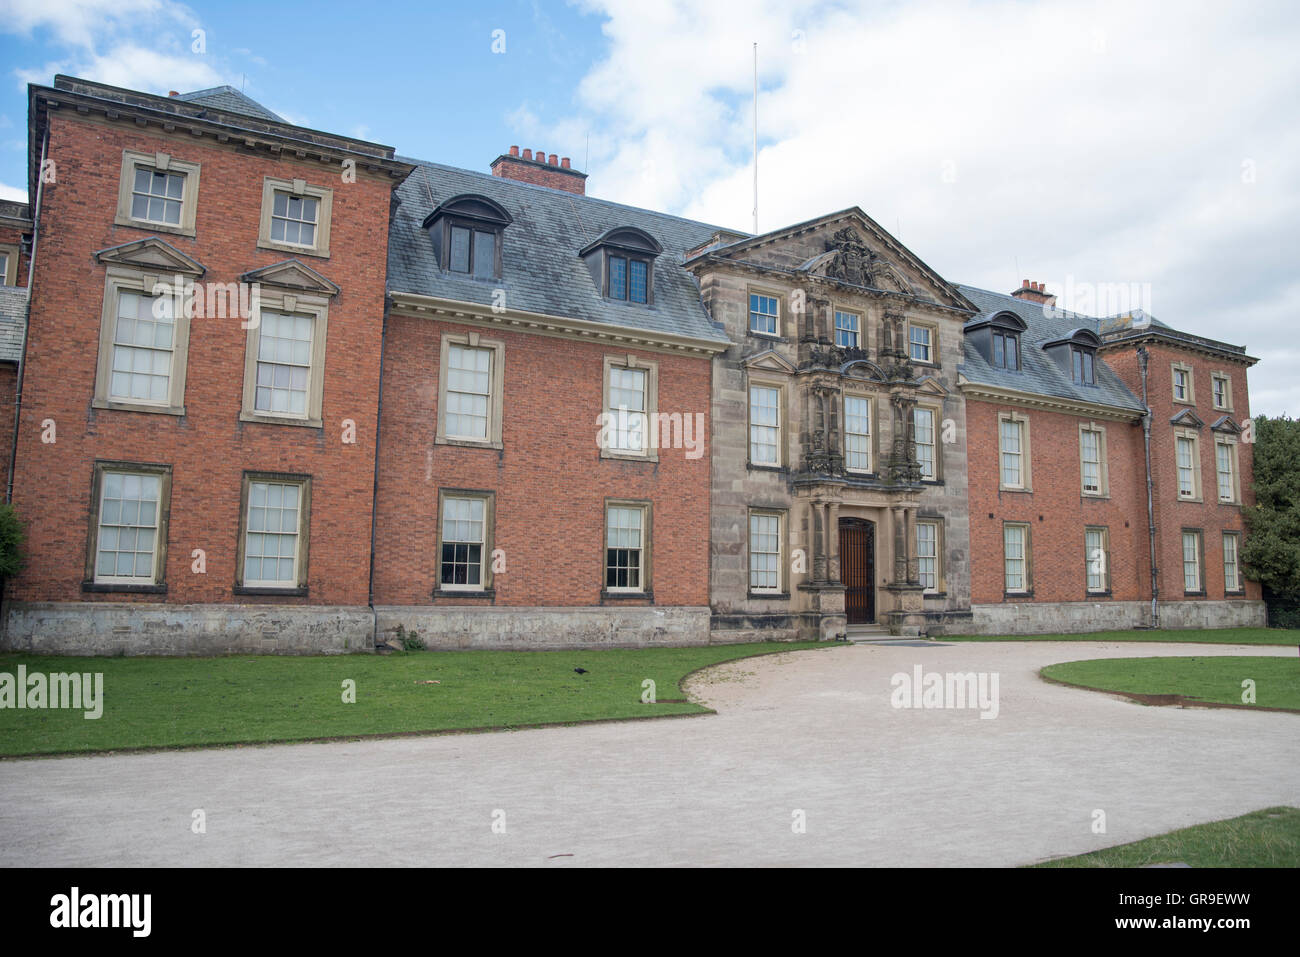 Dunham Massey Hall an English country house / stately home in  Trafford, near Altrincham, Cheshire - Stock Image